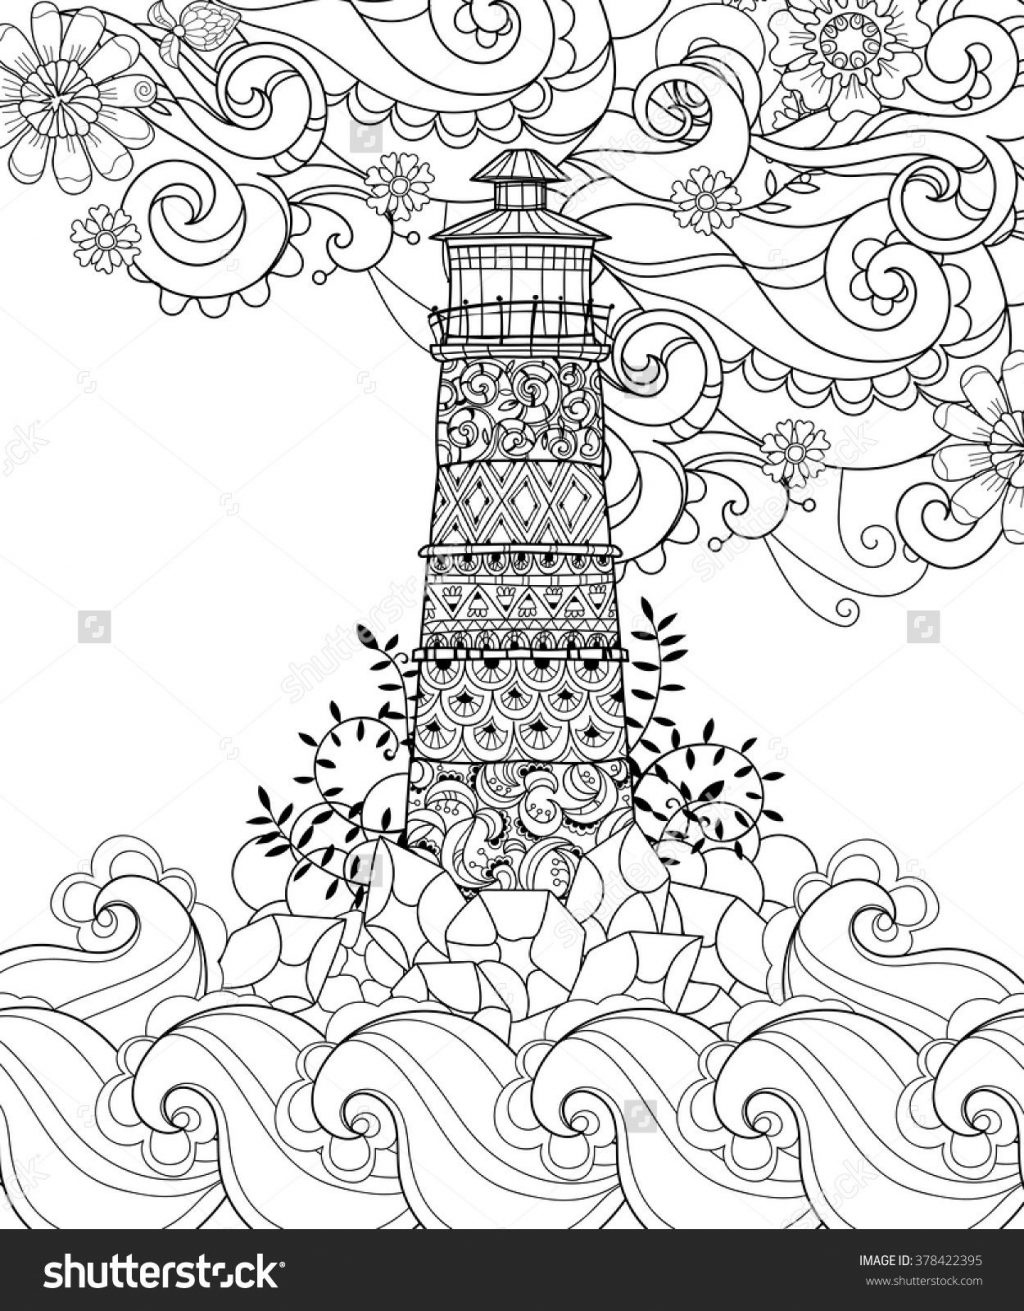 Coloring Page ~ Zen Coloring Pages Printable Page At Getdrawings Com - Free Printable Zen Coloring Pages